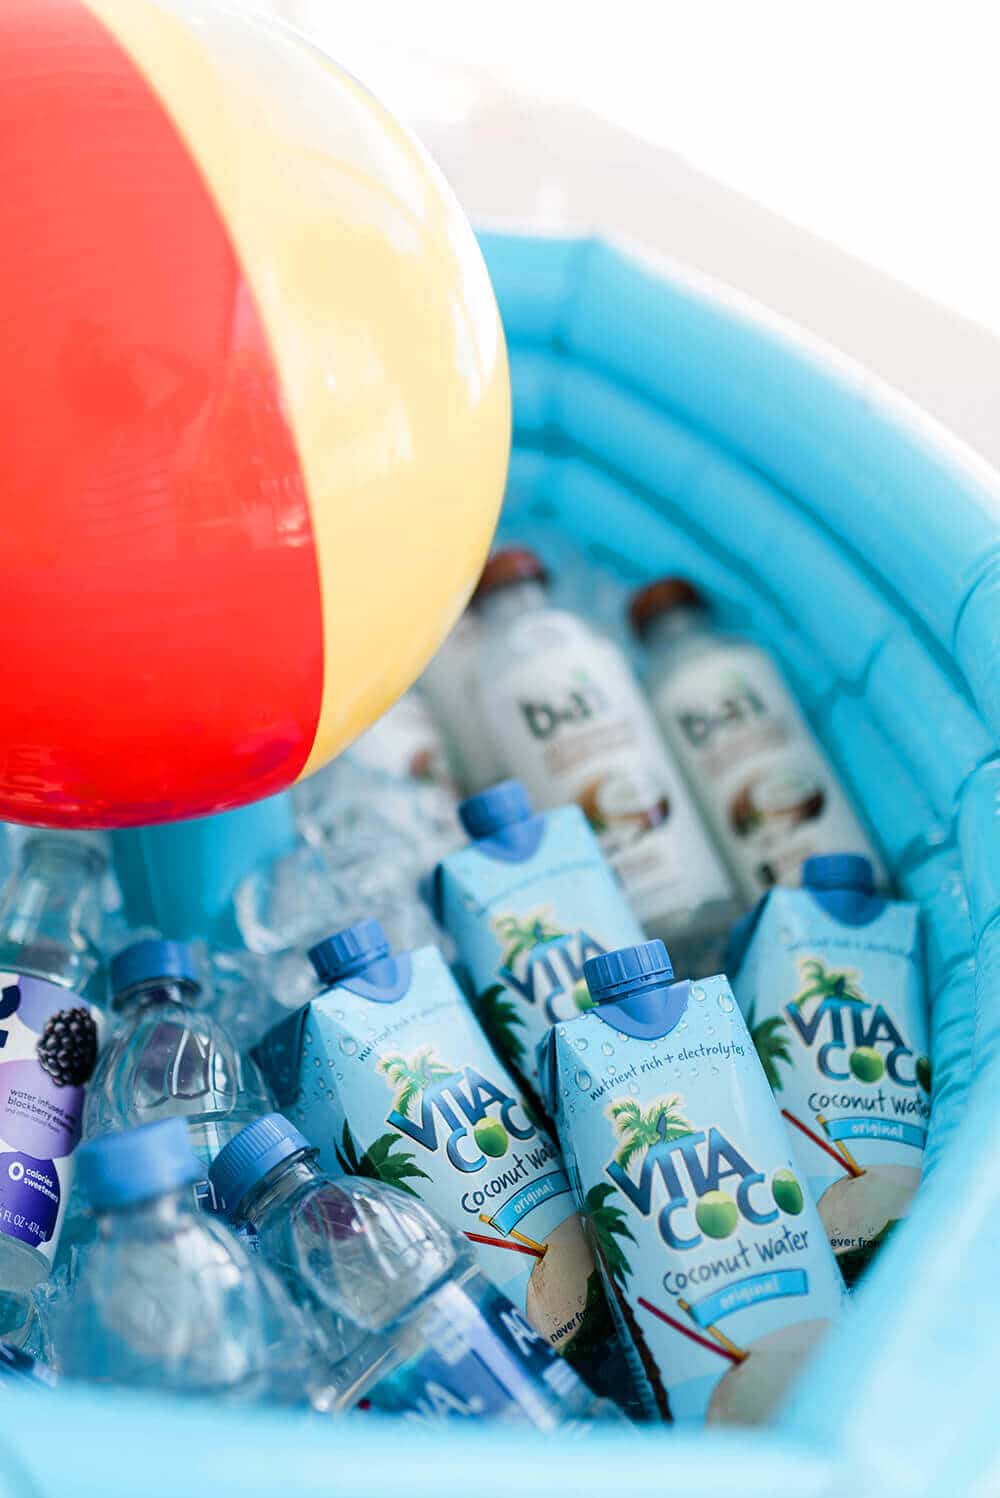 Coconut water and Bai drinks in mini beverage pool